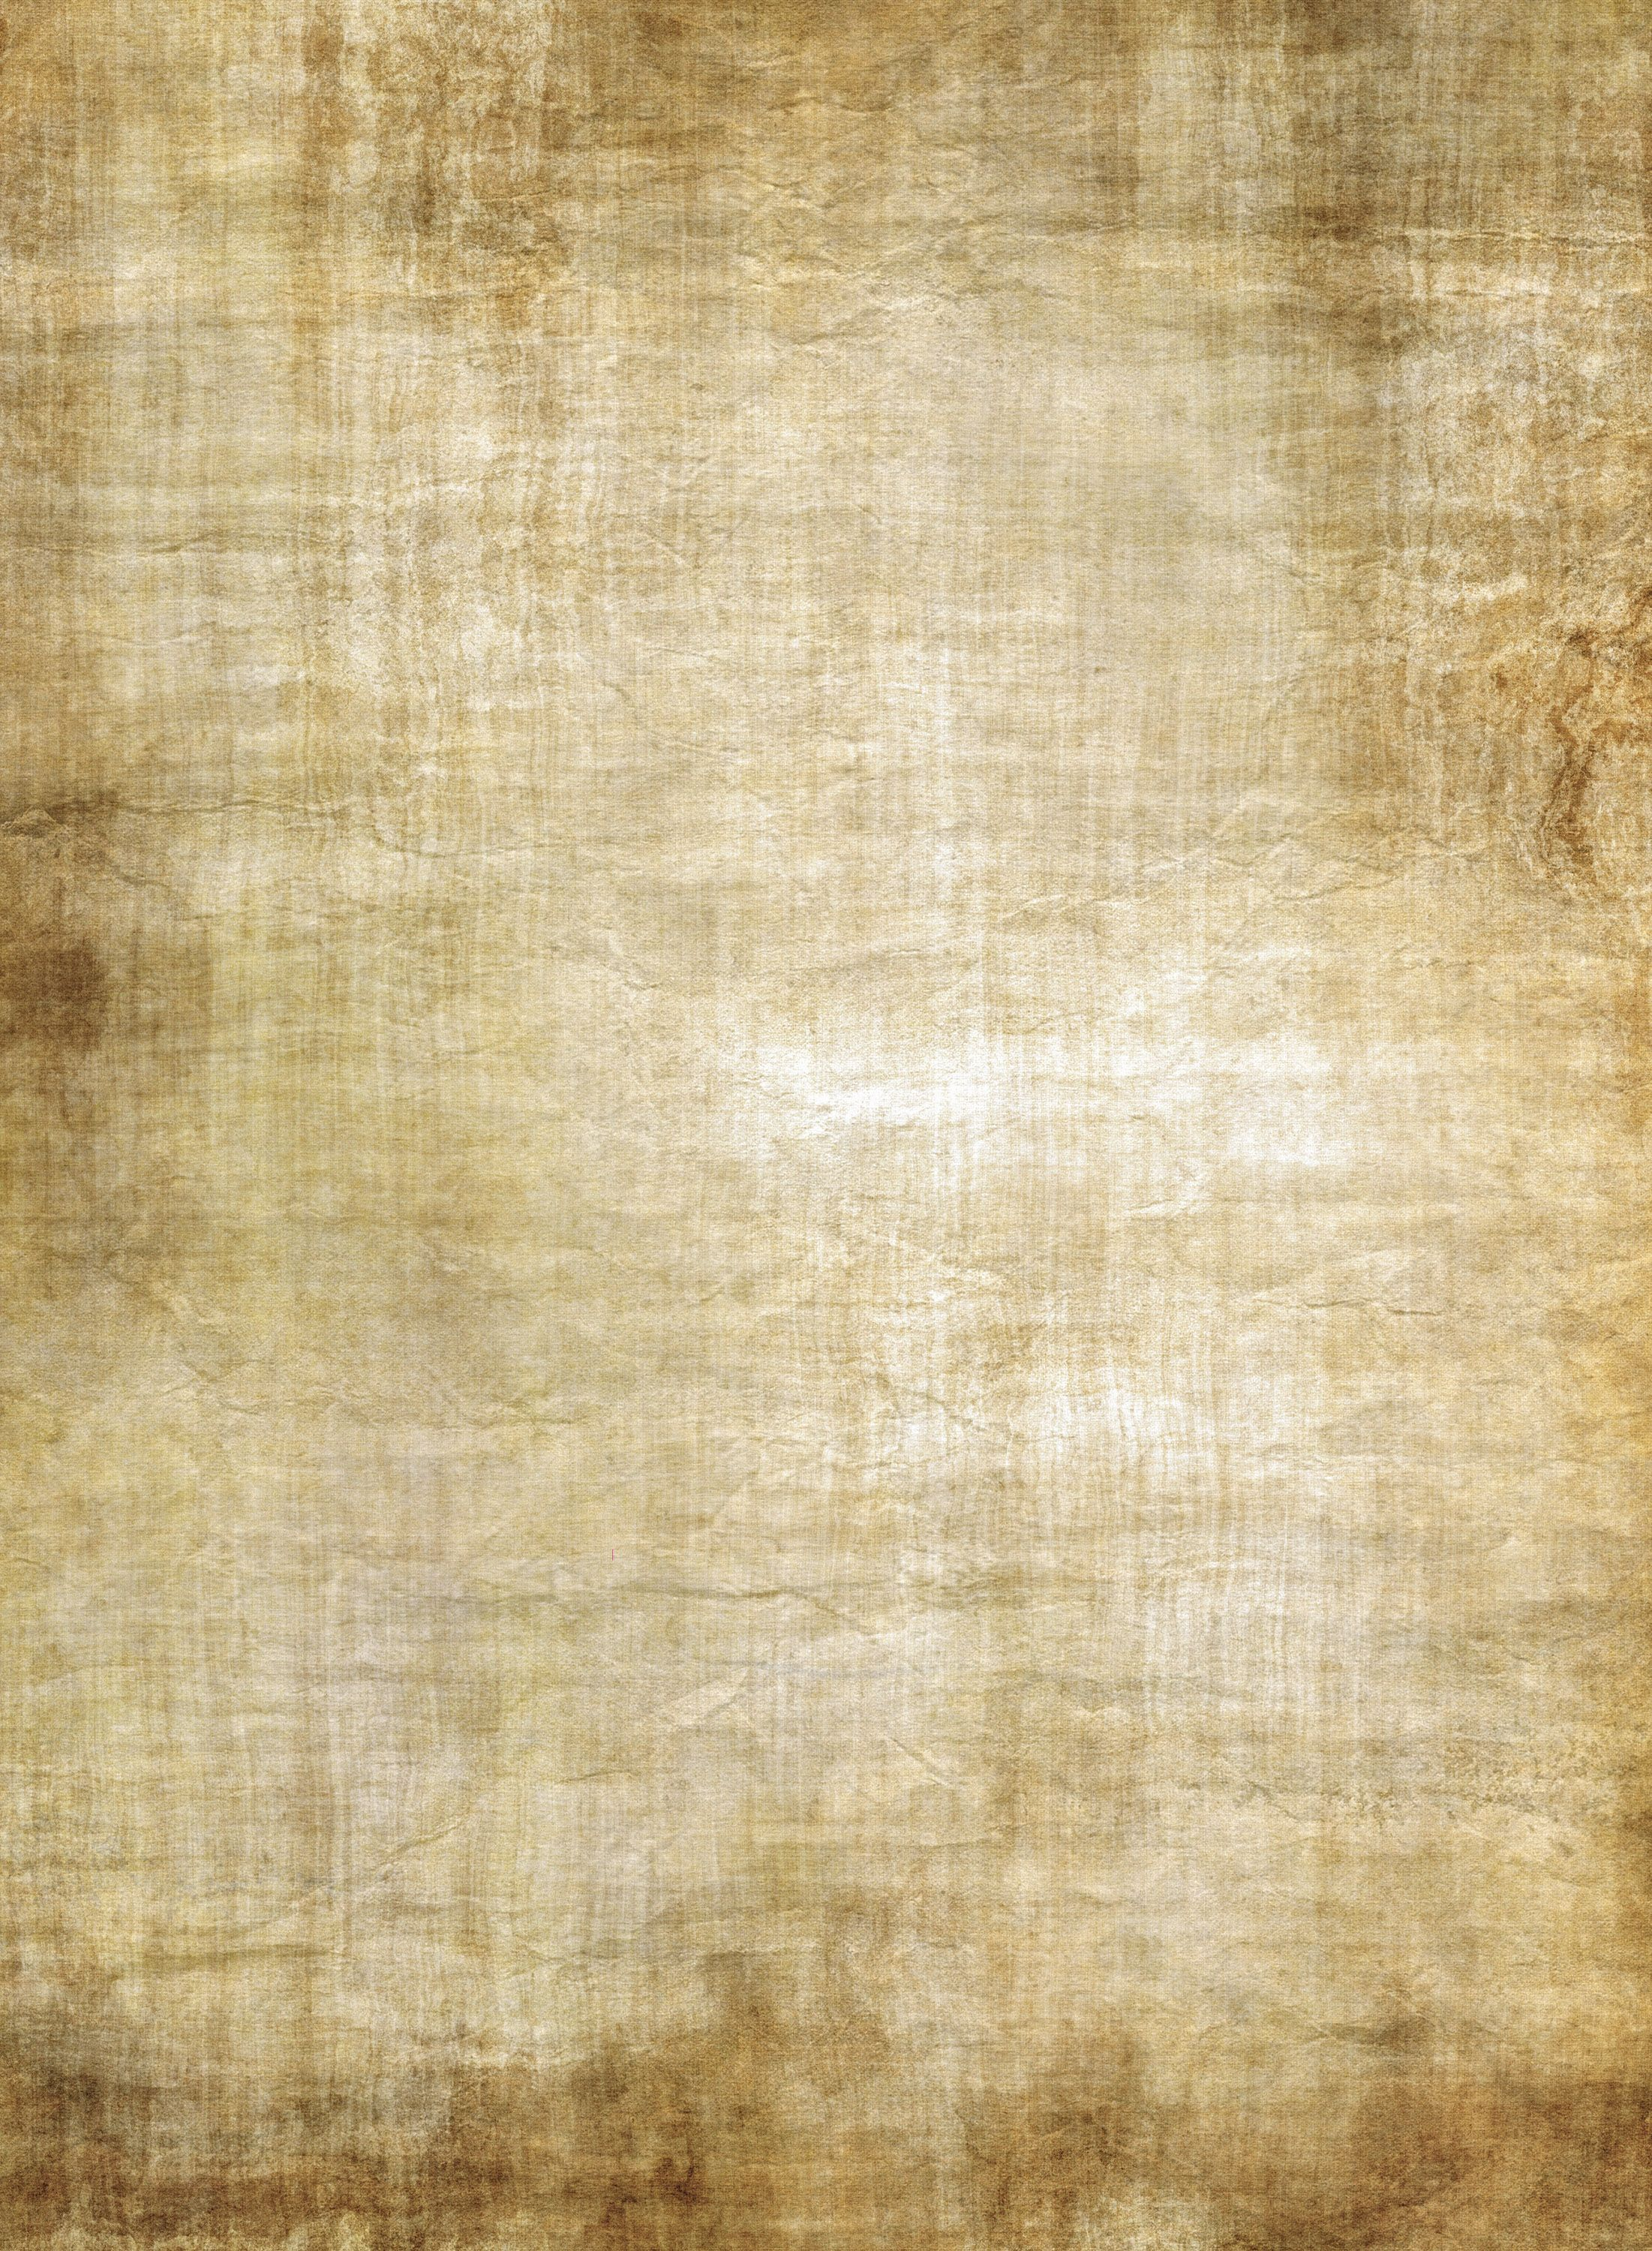 another free old brown vintage parchment paper texture for